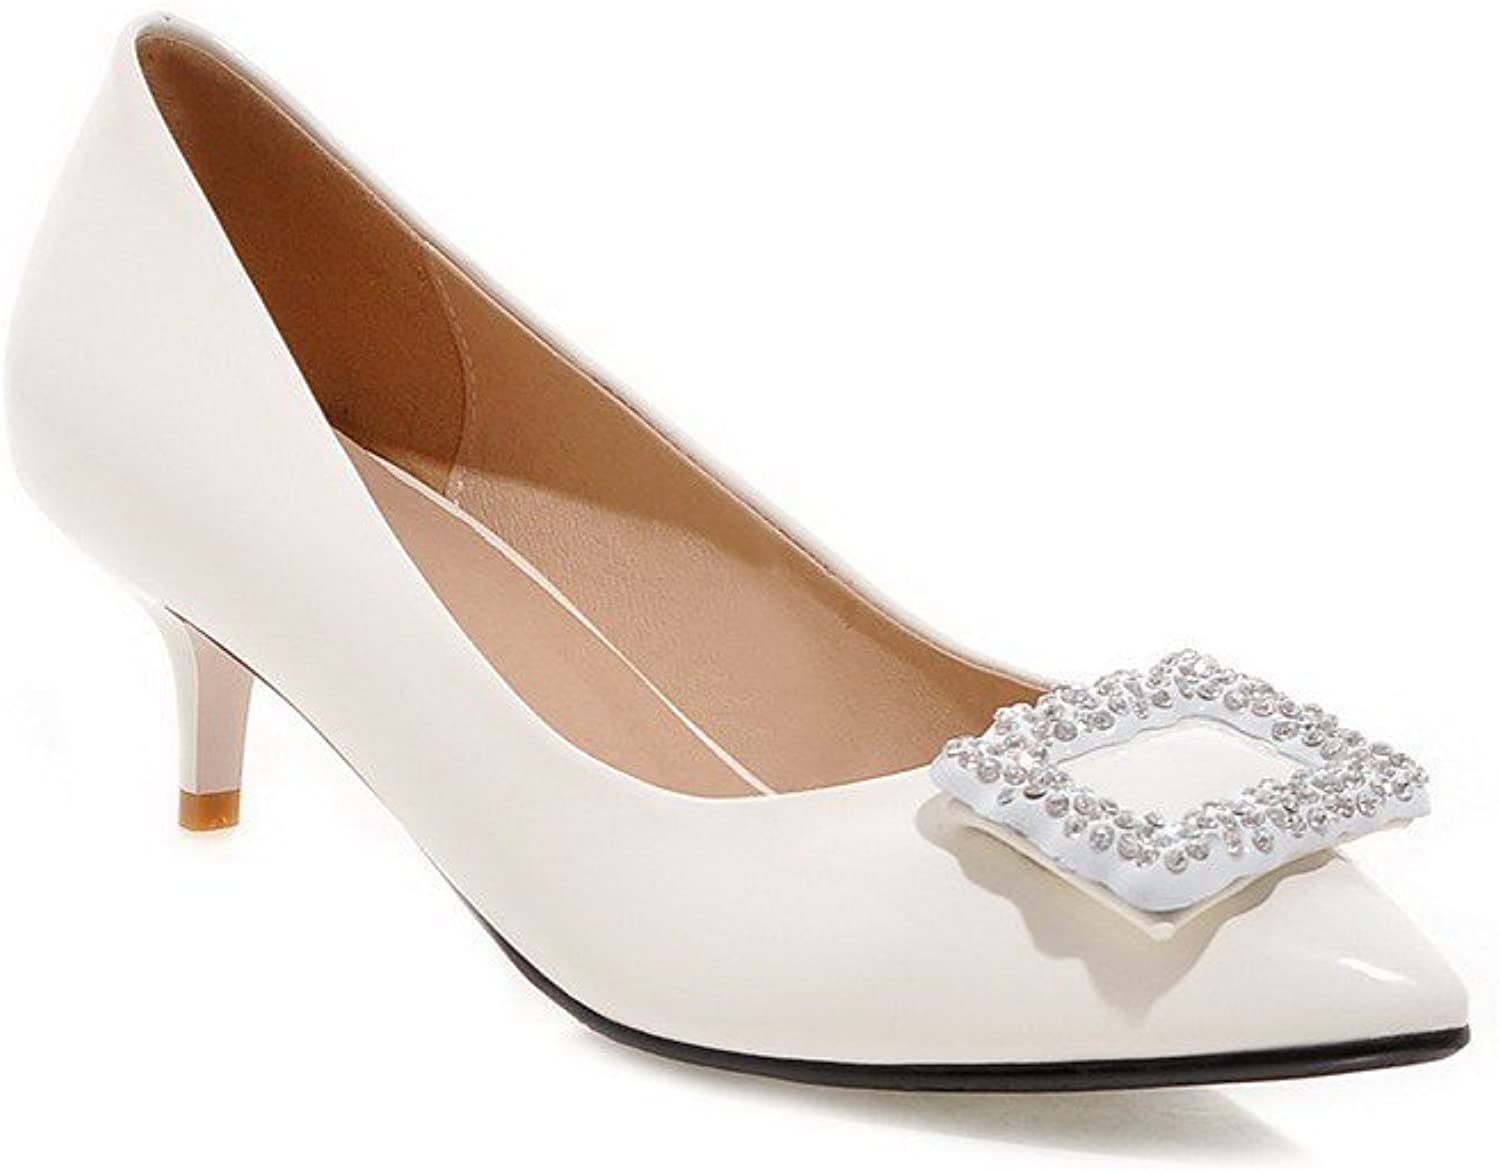 AmoonyFashion Women's PU Solid Pull-on Pointed Closed Toe Kitten-Heels Pumps-shoes